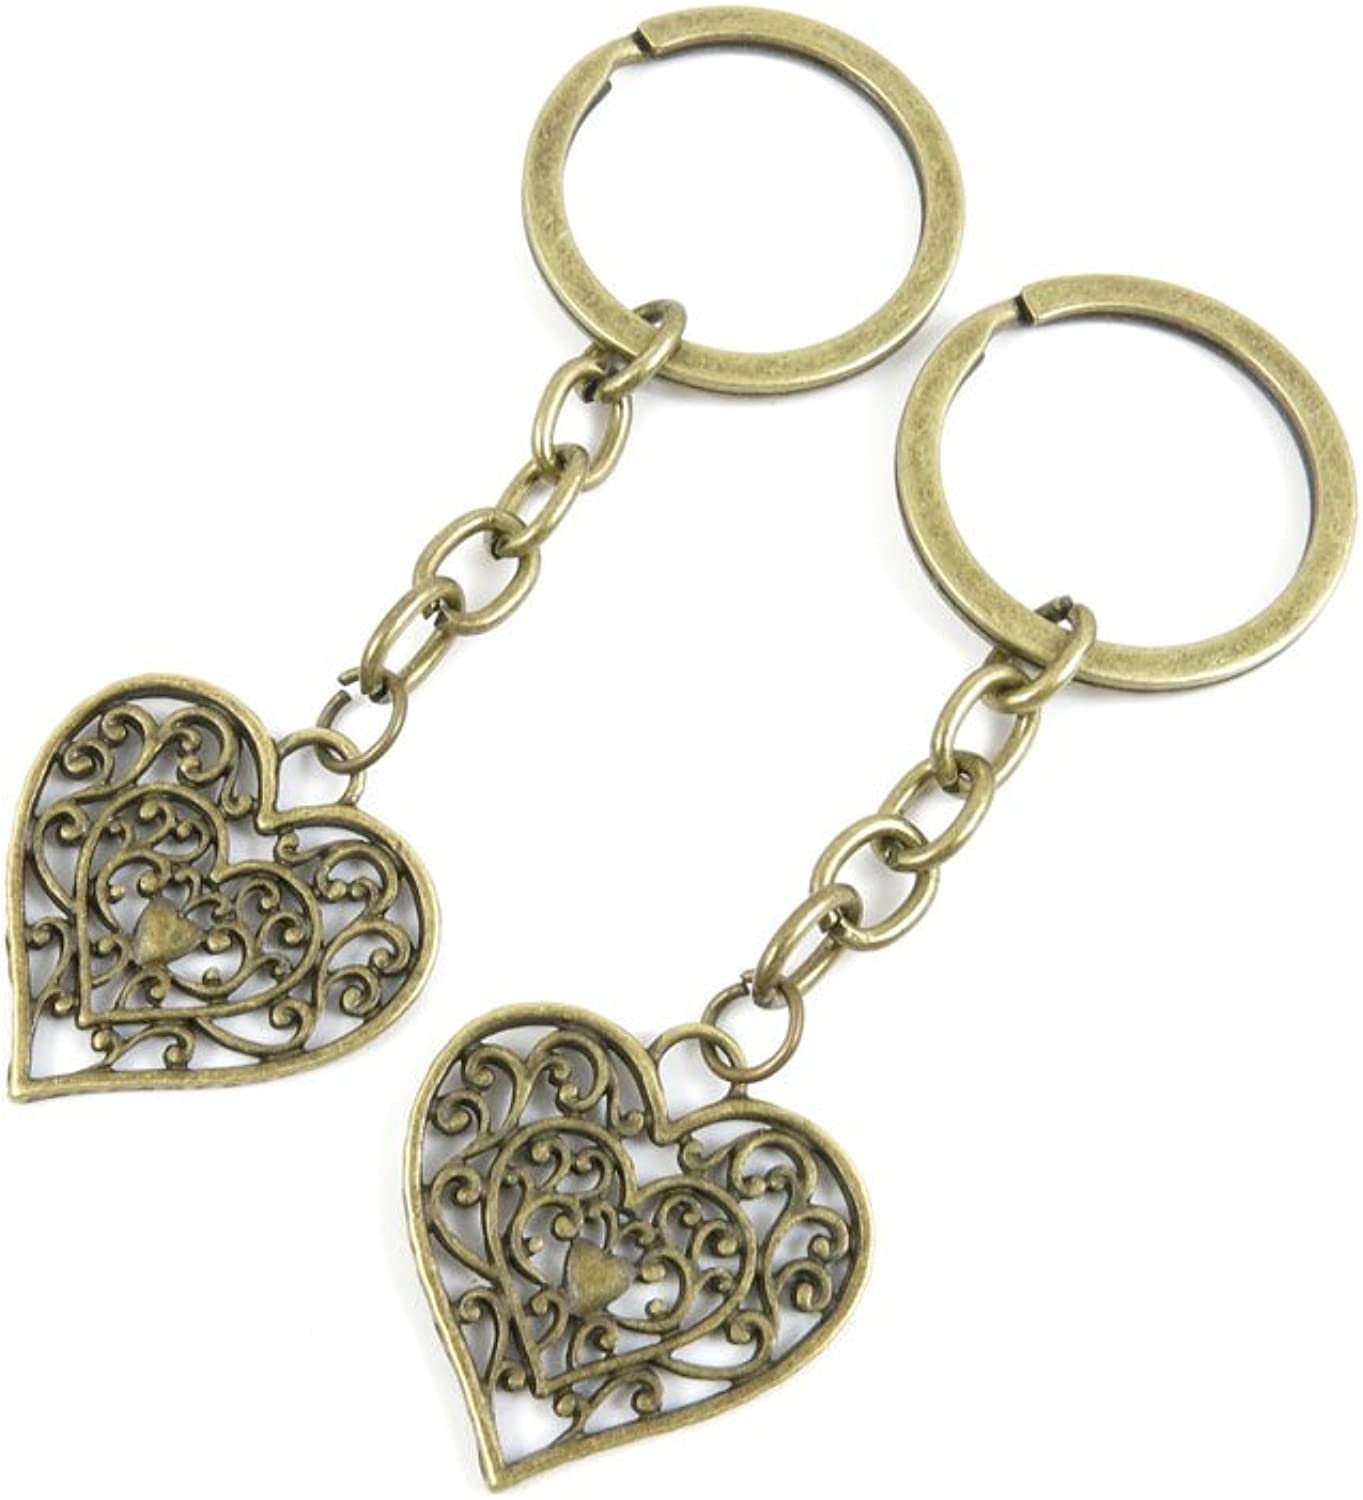 180 Pieces Fashion Jewelry Keyring Keychain Door Car Key Tag Ring Chain Supplier Supply Wholesale Bulk Lots H2LB7 Hollow Heart